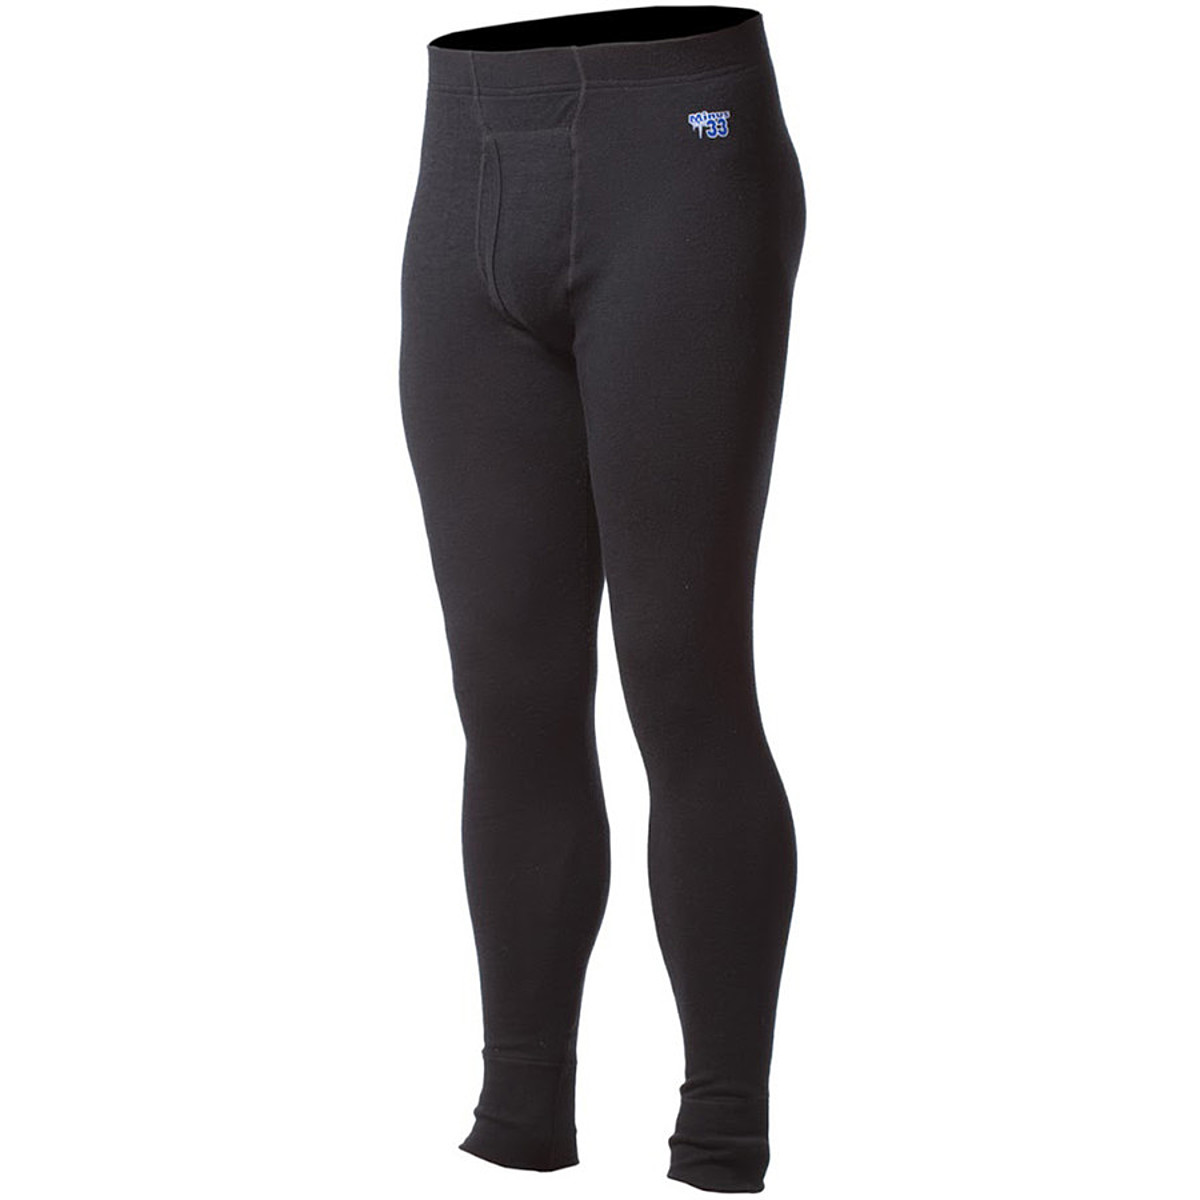 Minus33 Katmai Merino Expedition Bottom